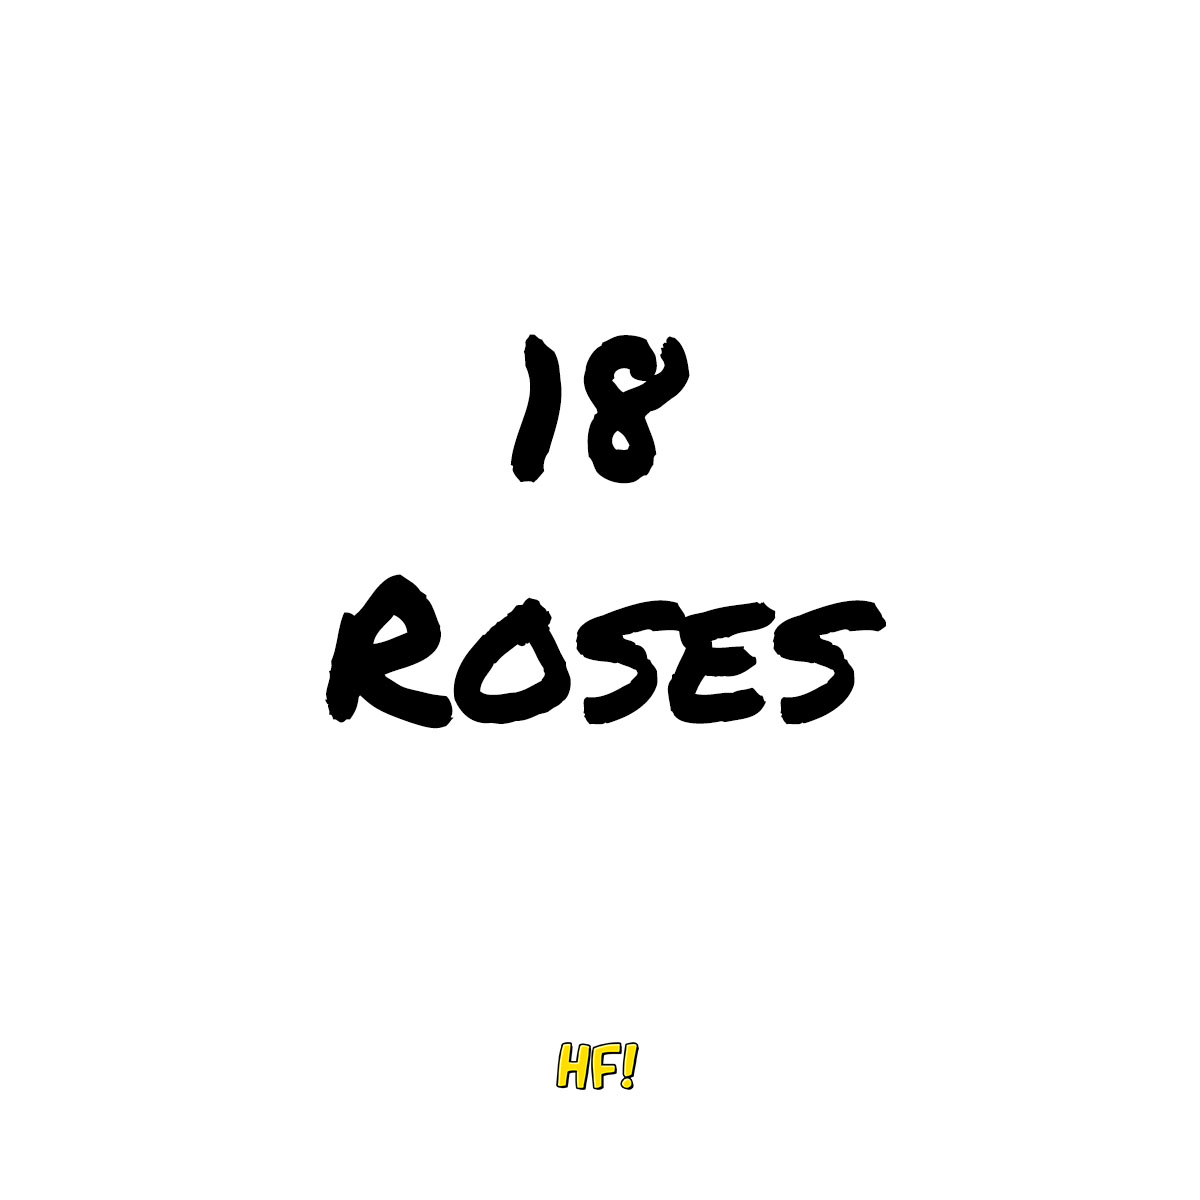 Hey-Francis-PI-Debut-Title-18 Roses.jpg